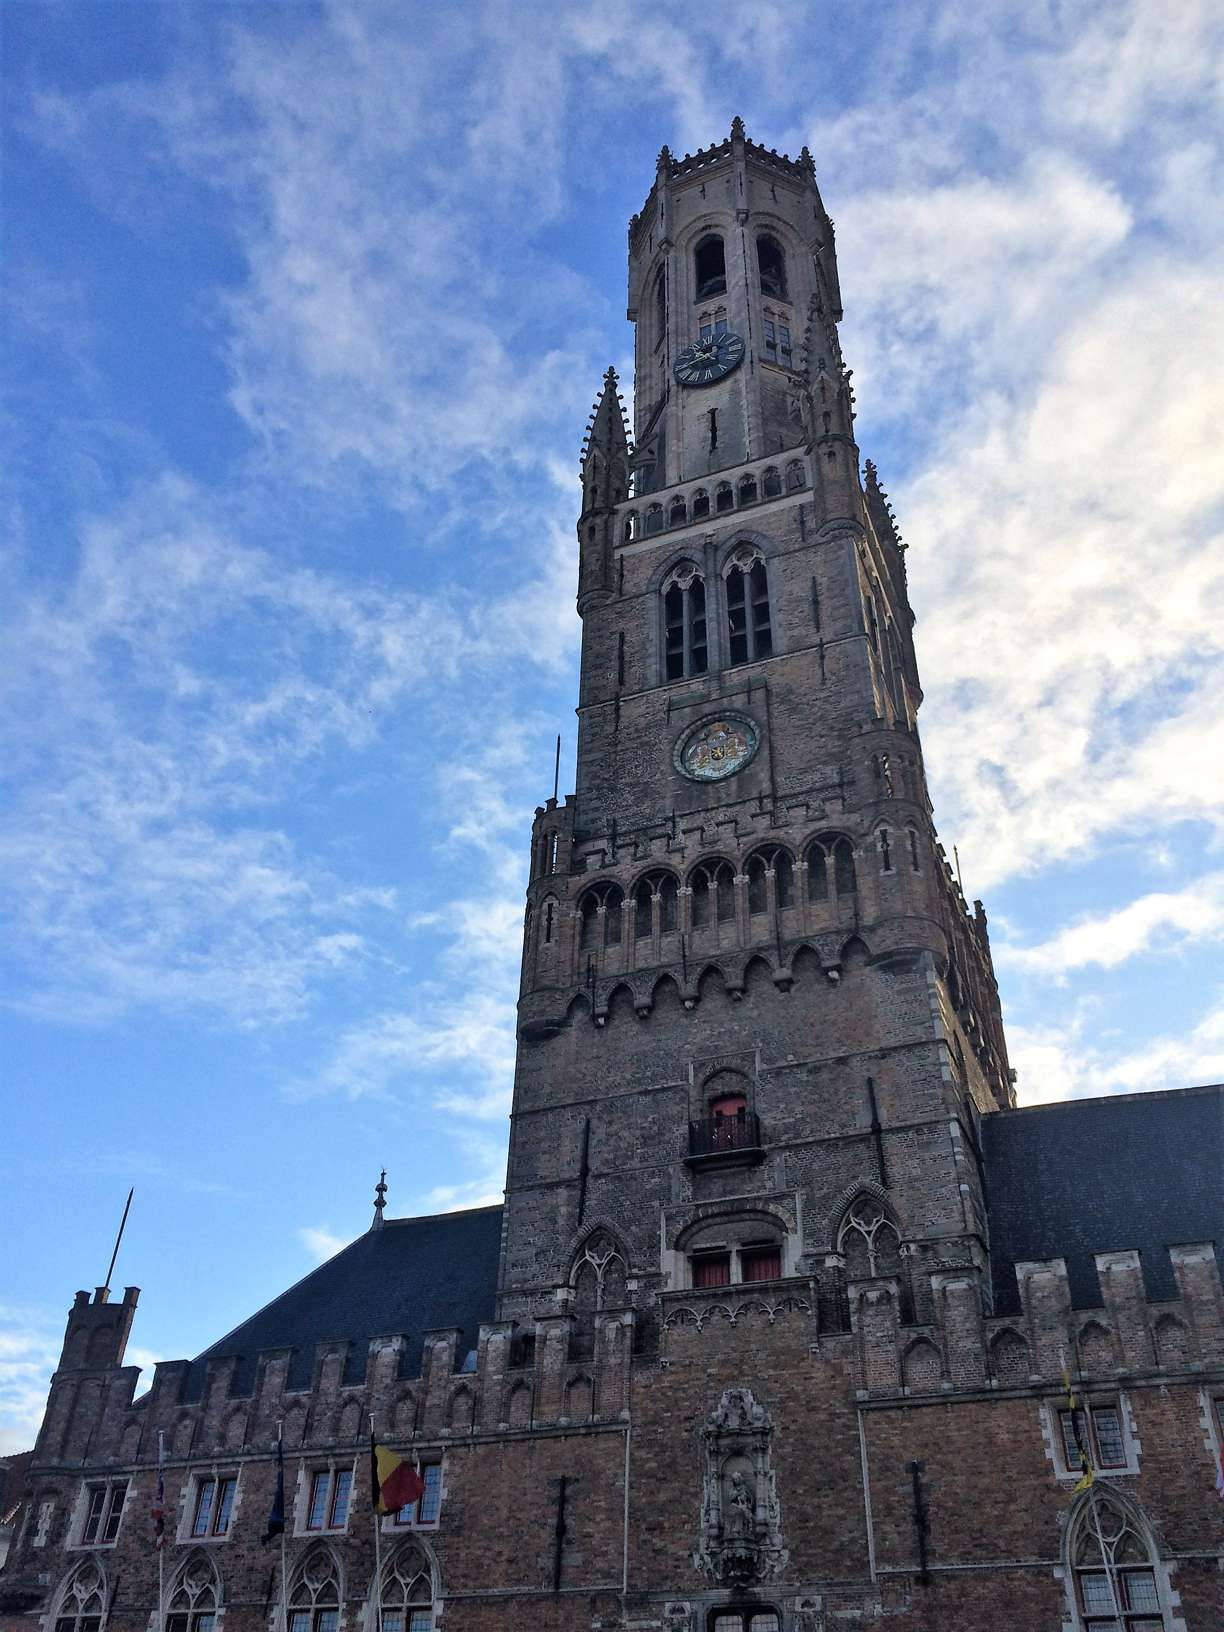 A picture of the belfry in Bruges, Belgium with a blue sky and some clouds in the background.